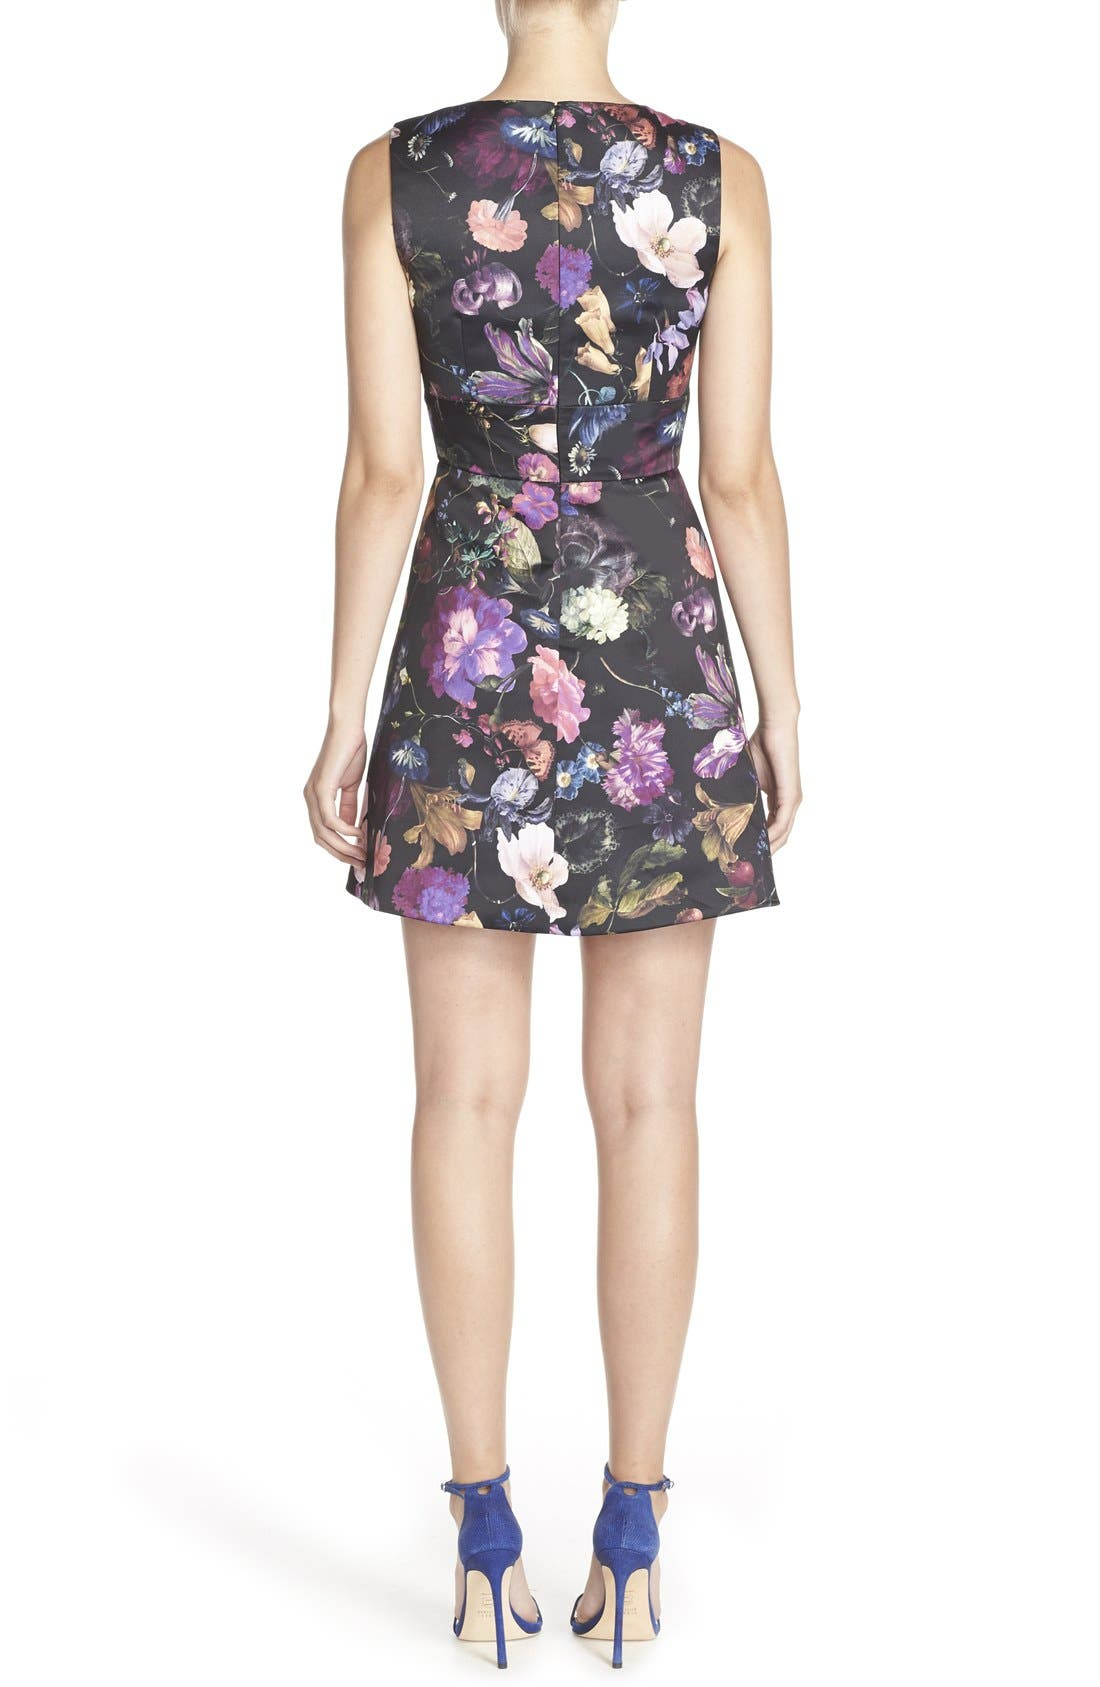 Cythia Rowley 'Winter' Floral Print Woven Fit & Flare Dress,                             Alternate thumbnail 4, color,                             009